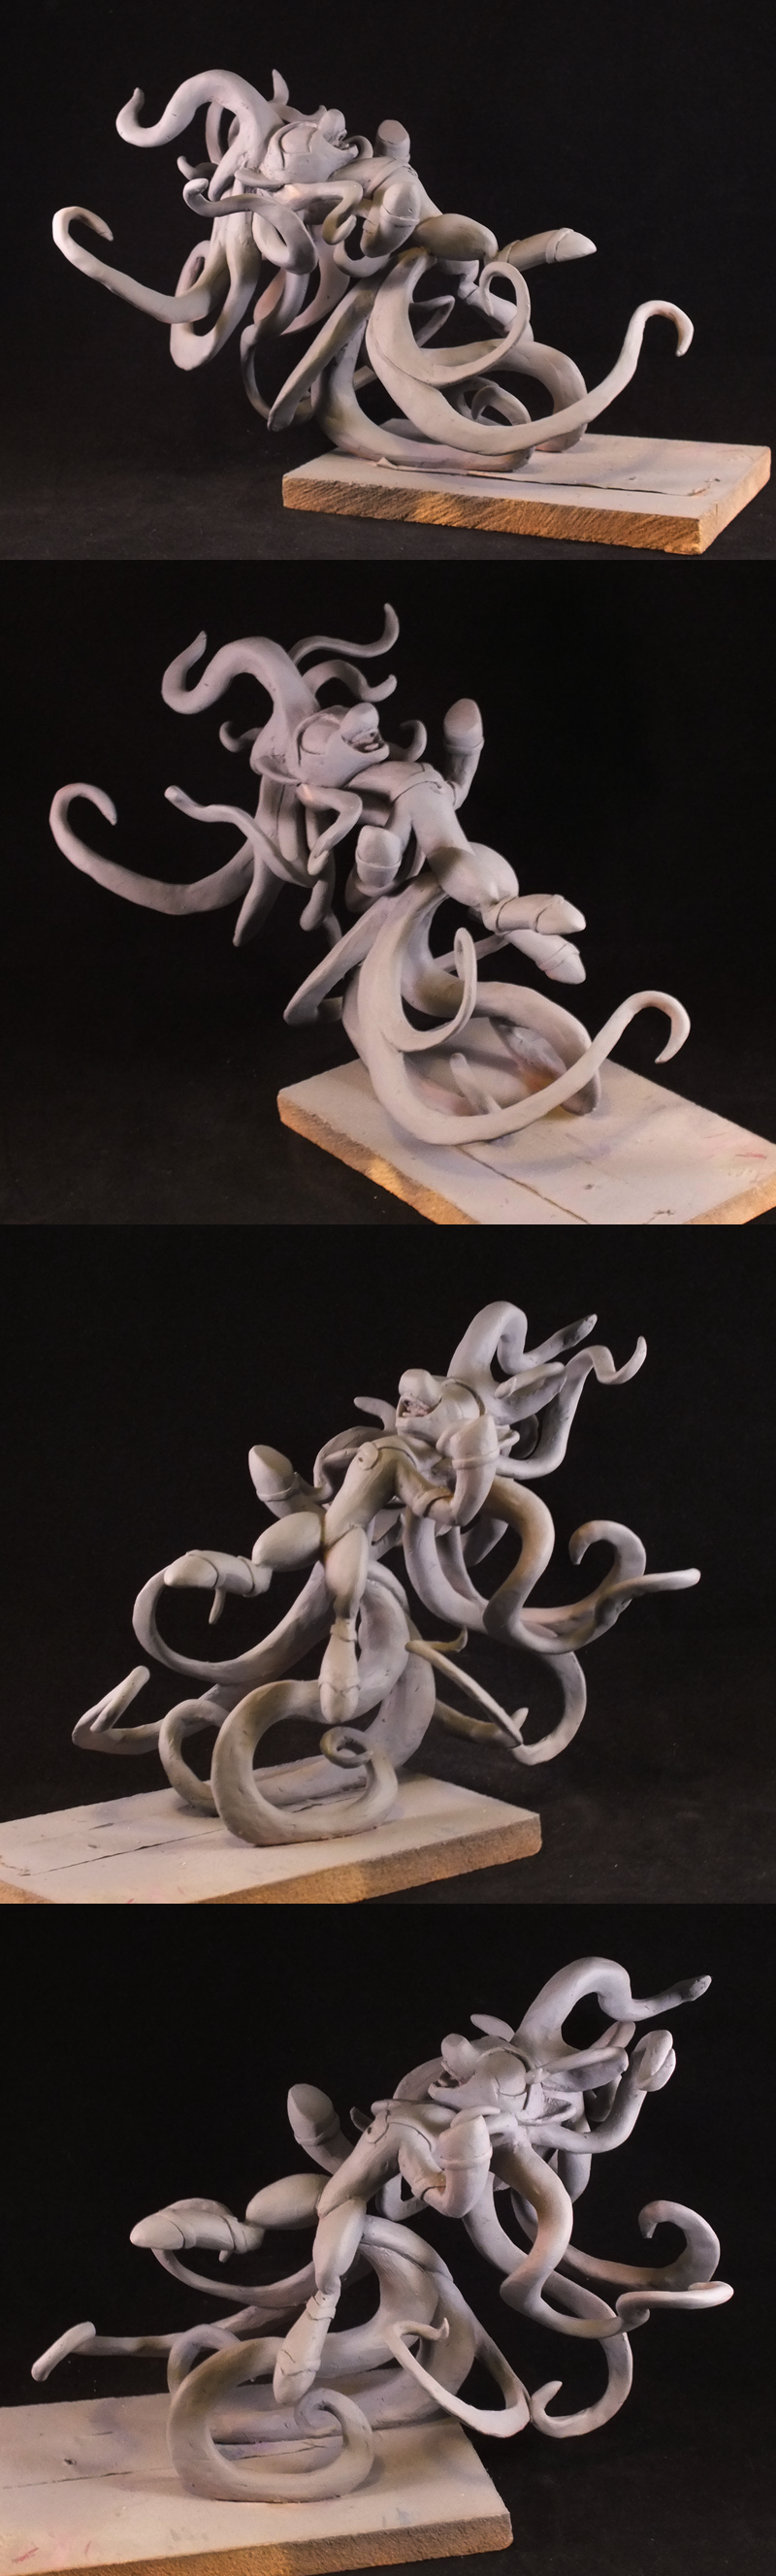 Maneiac - Final Sculpt Spin by frozenpyro71